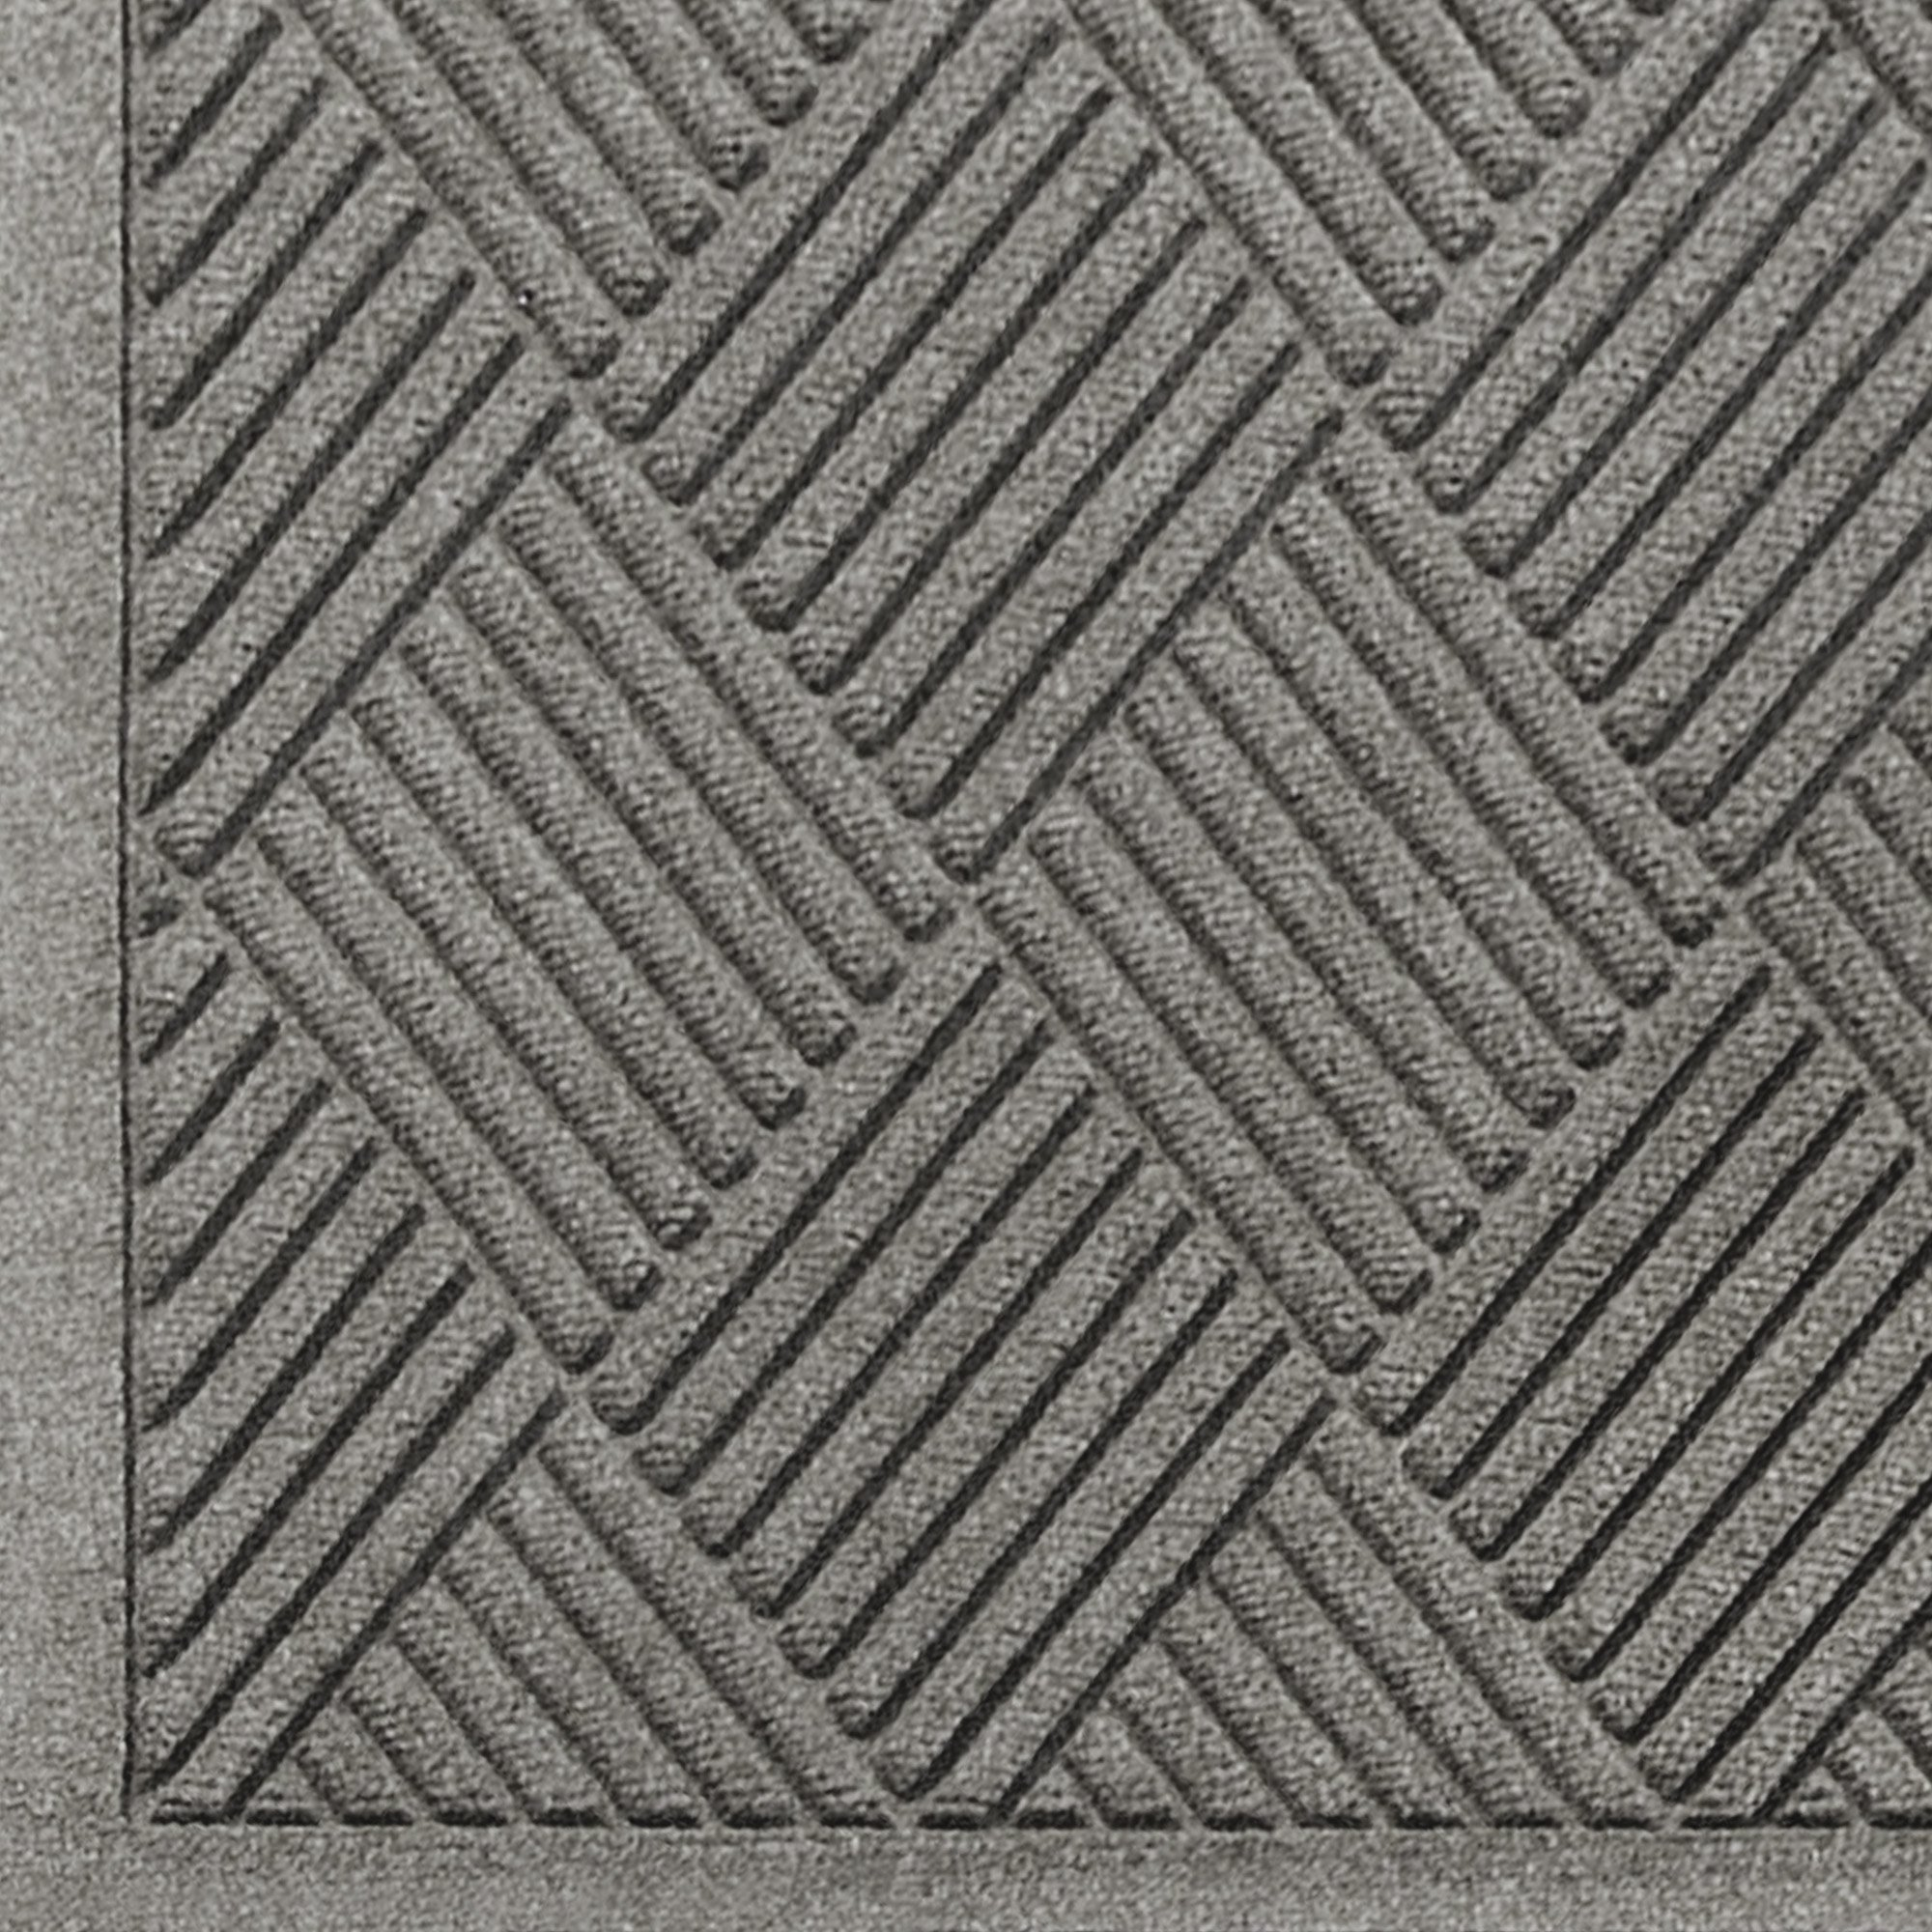 Andersen 221 Waterhog Fashion Diamond Polypropylene Fiber Entrance Indoor/Outdoor Floor Mat, SBR Rubber Backing, 8.4' Length x 4' Width, 3/8'' Thick, Medium Grey